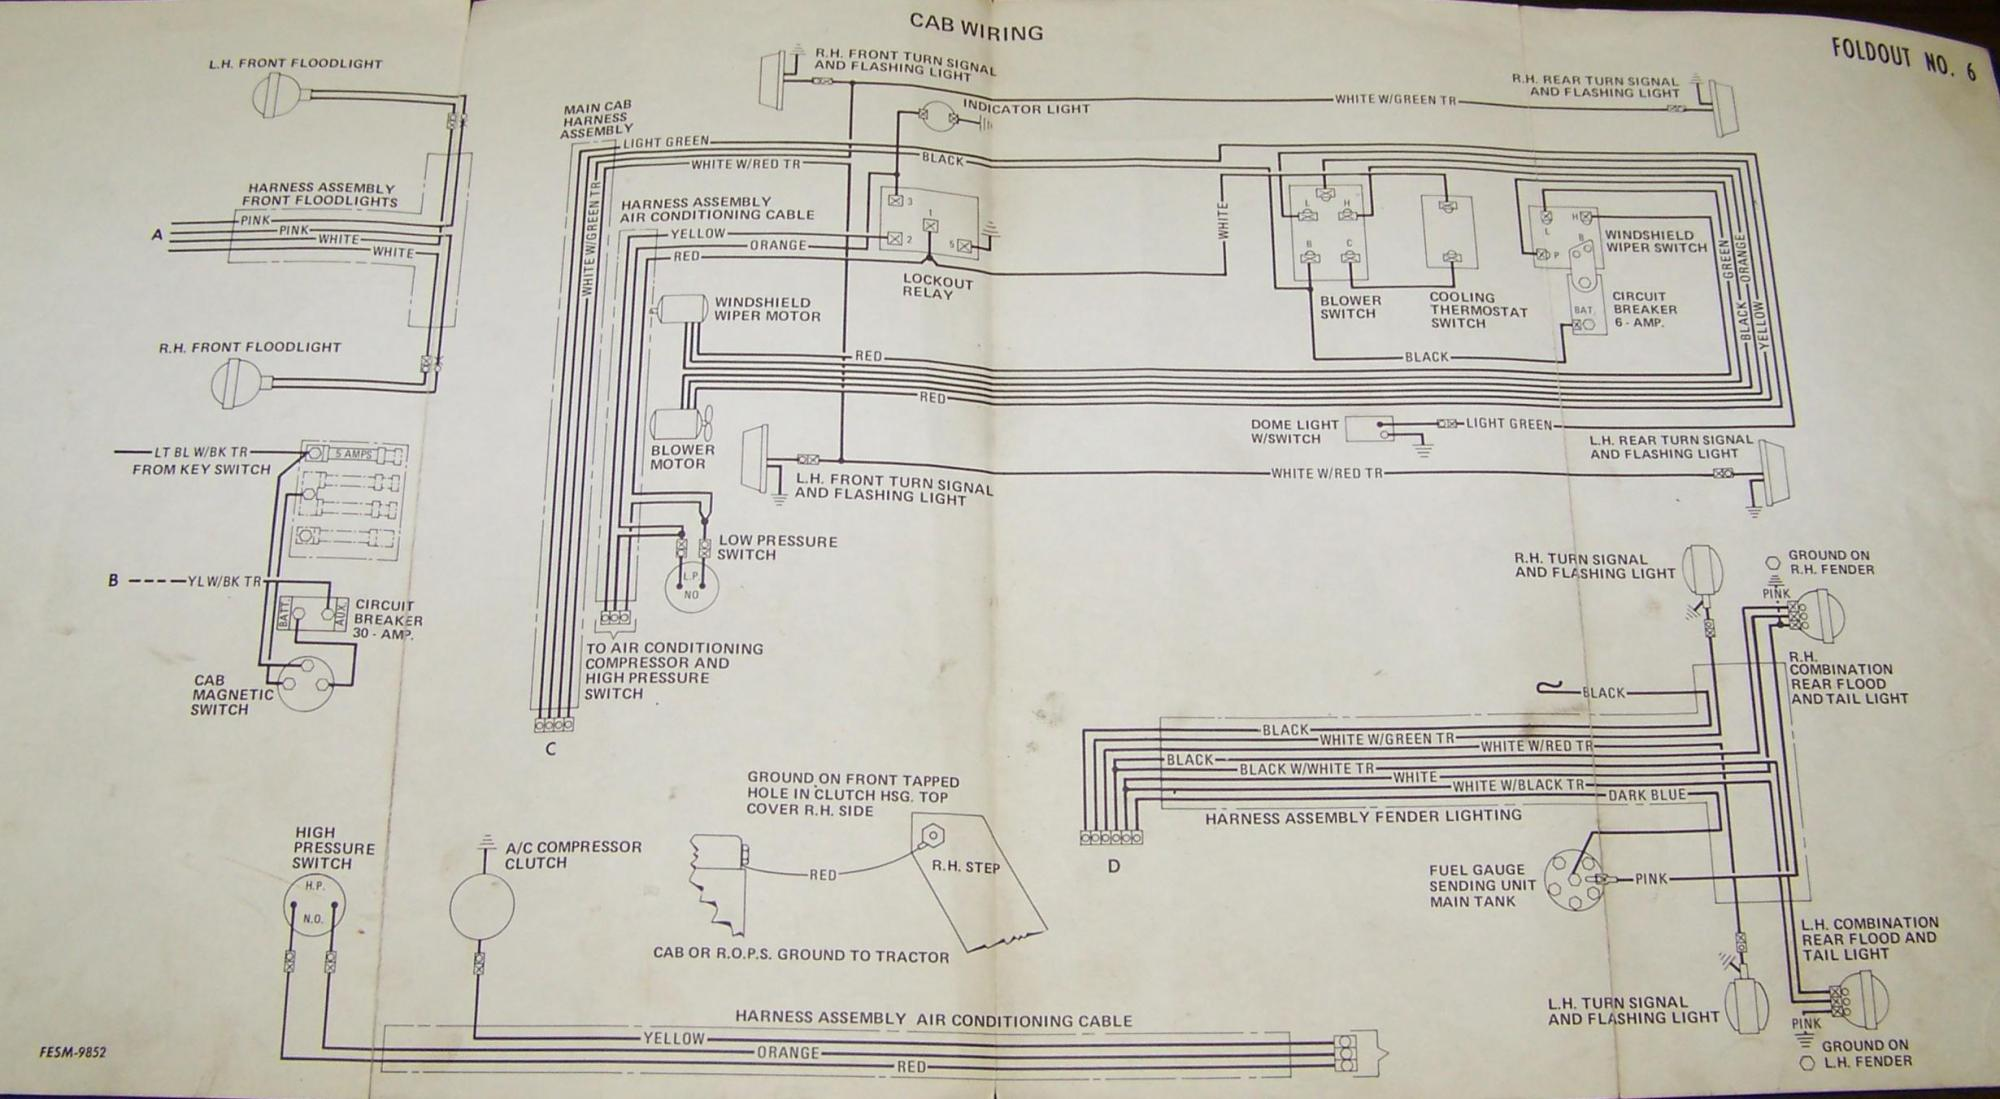 hight resolution of carter gruenewald co inc ih farmall tractor electrical wiring rh cngco com international harvester 434 wiring international harvester wiring diagrams